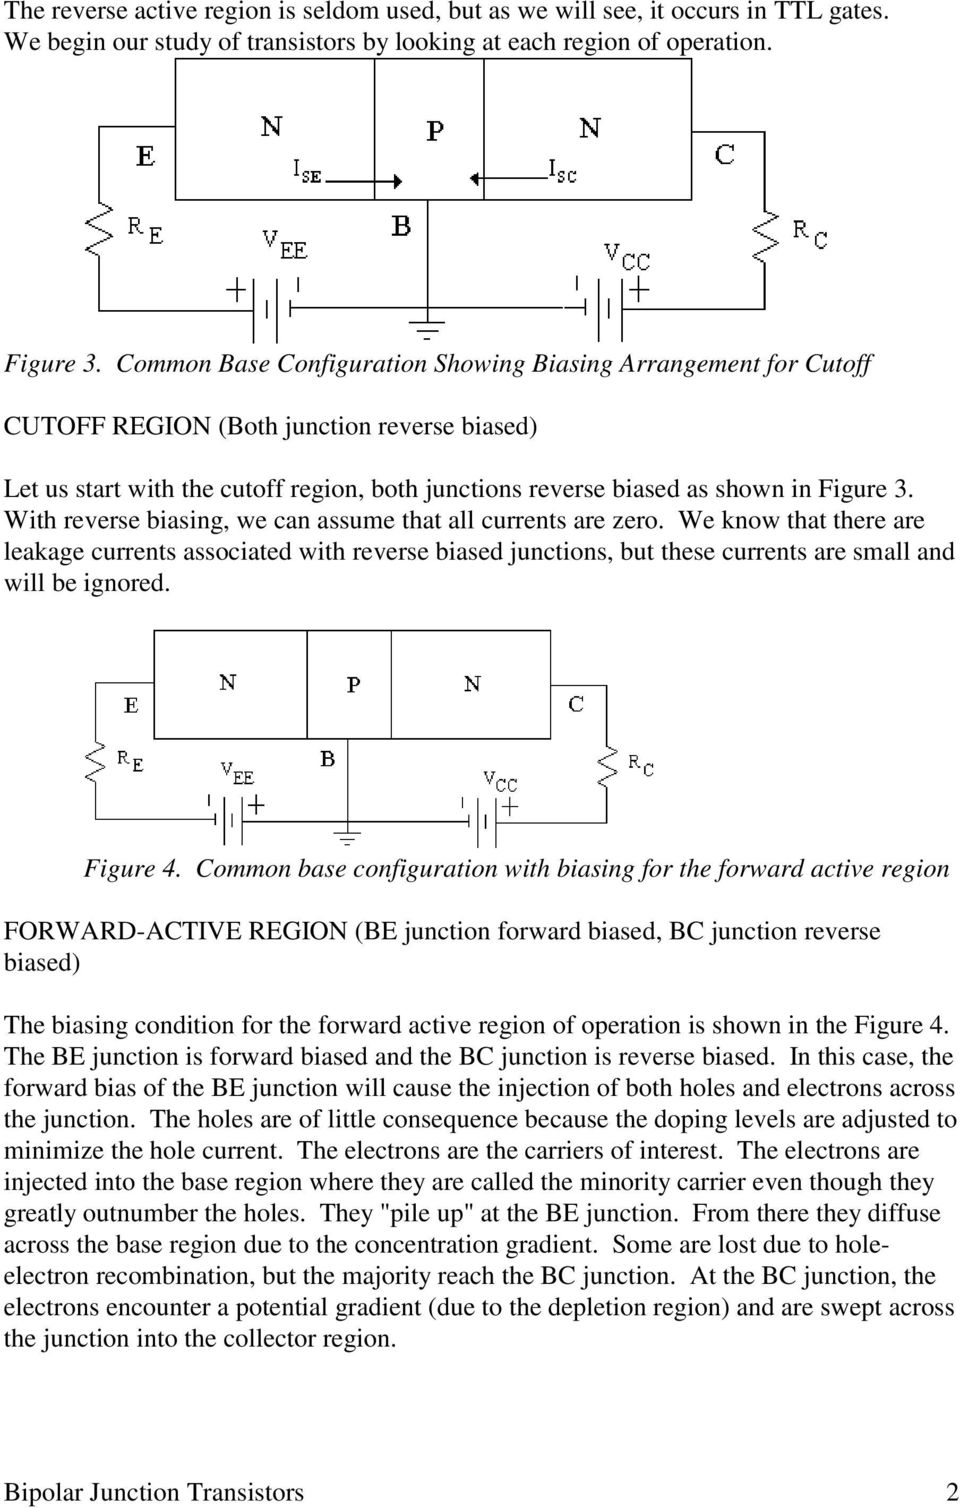 Bipolar Junction Transistors Pdf Commonbasenpntransistorcircuitjpg With Reverse Biasing We Can Assume That All Currents Are Zero Know